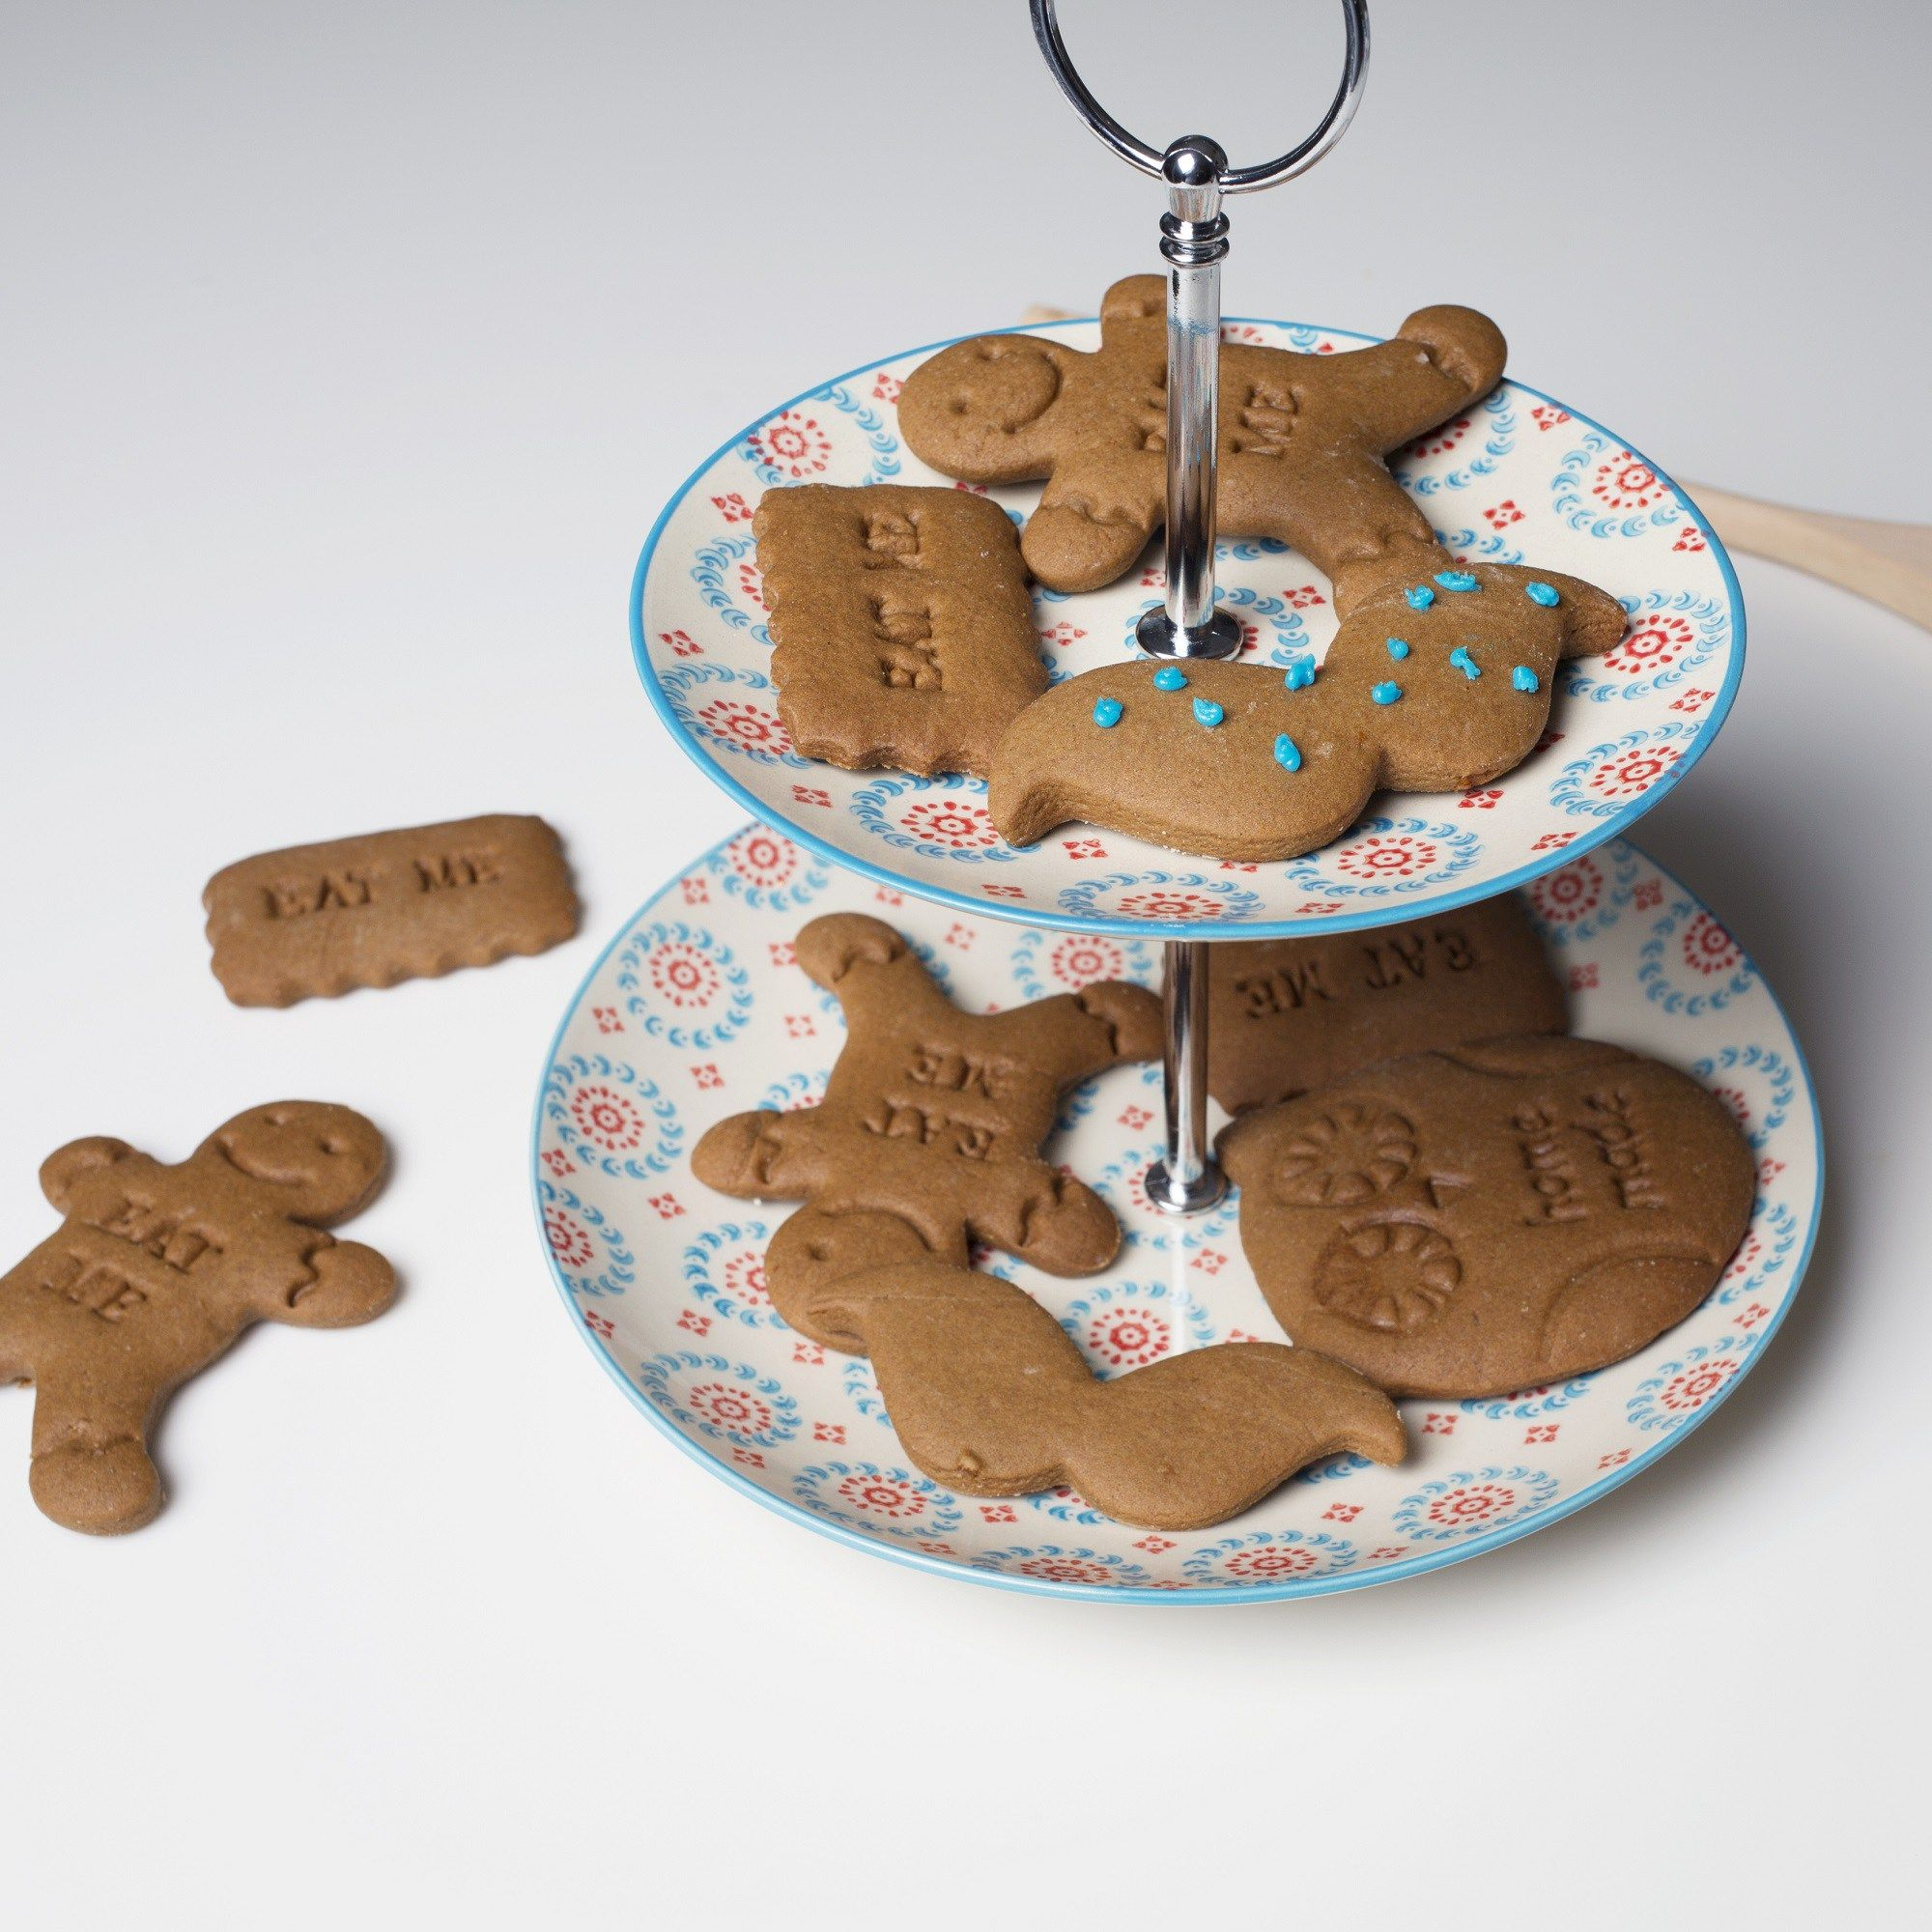 We Make Gingerbread Men! (With images) Gingerbread